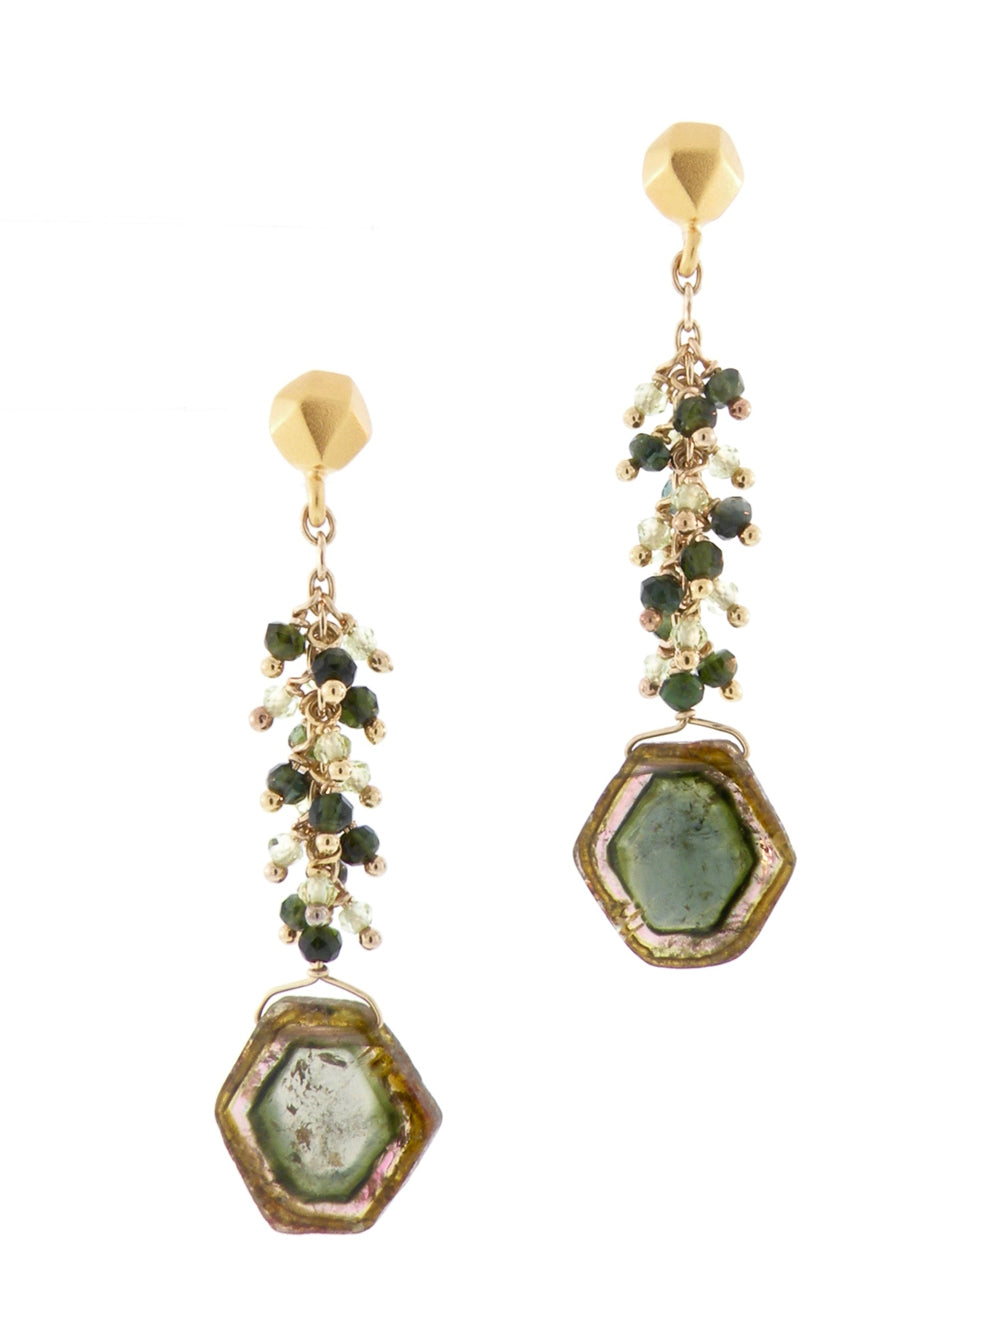 Sacred Geometric Embellishments of the Alhambra Earrings - Dana Busch Designs